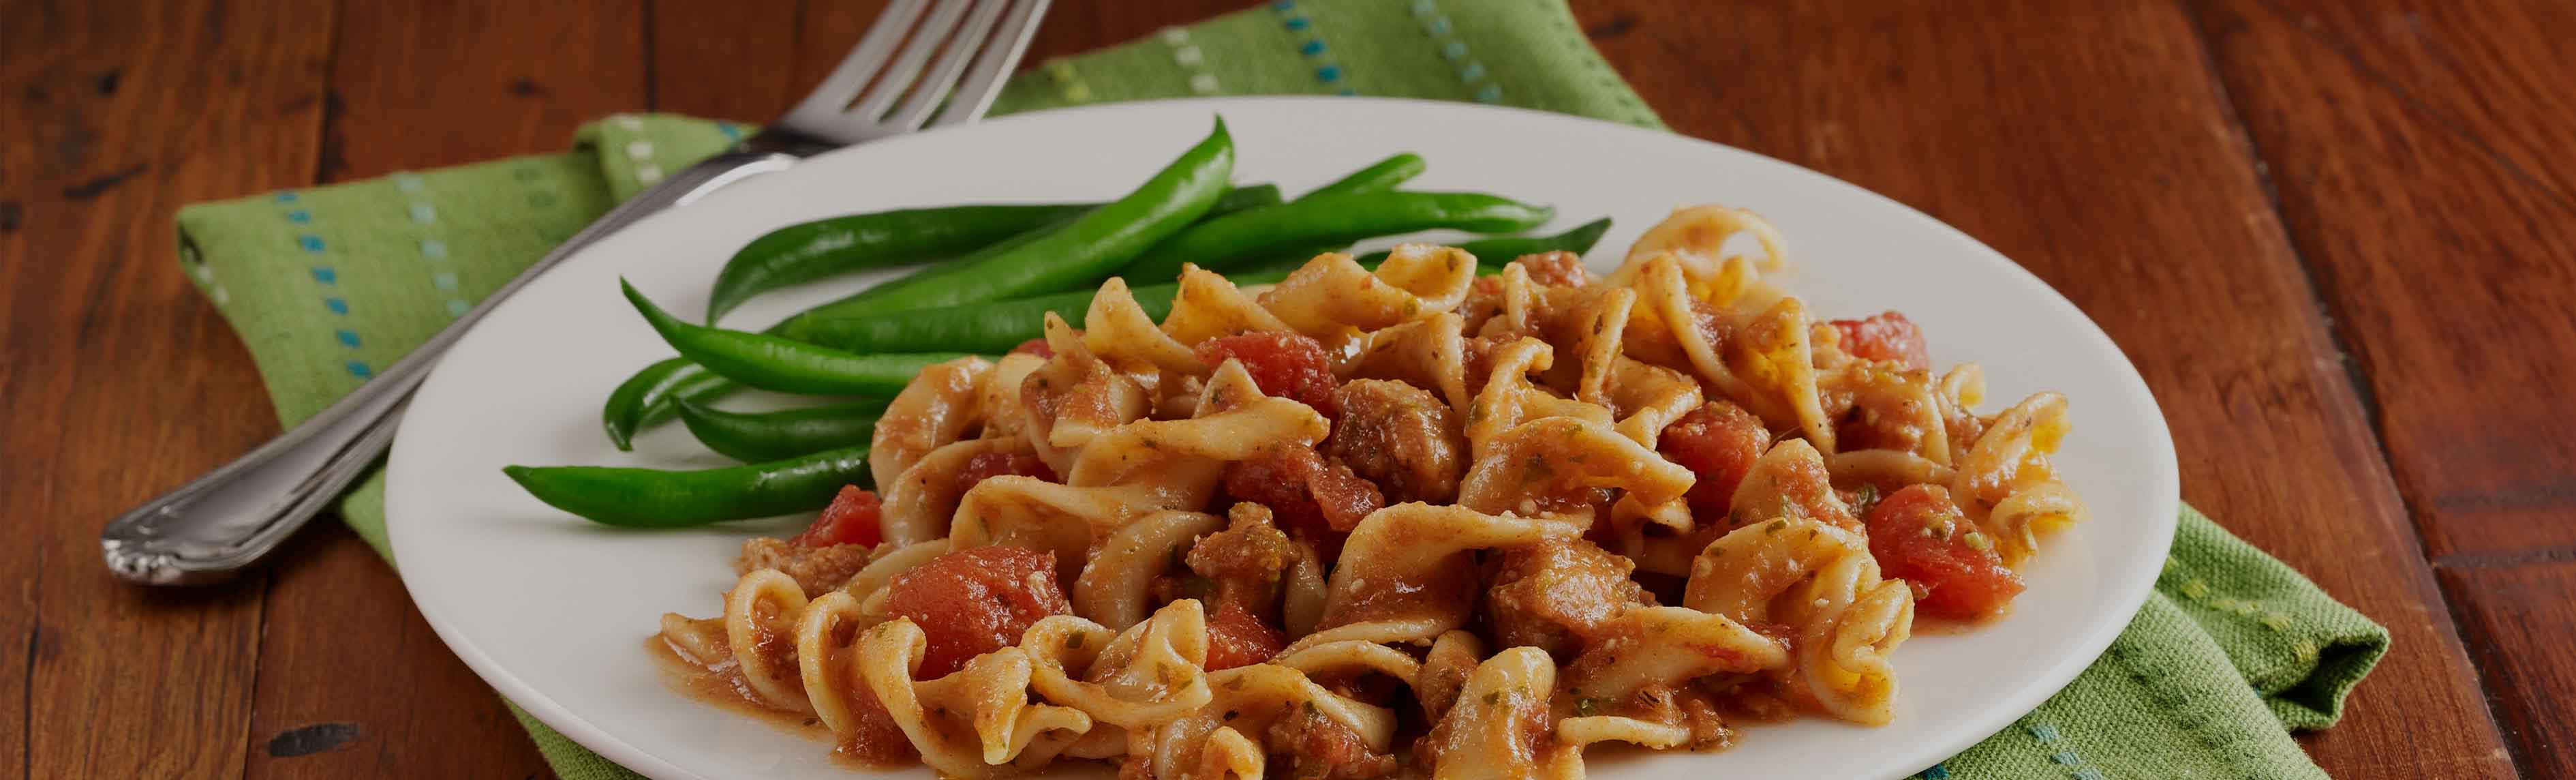 Sausage Tomato and Noodle Toss